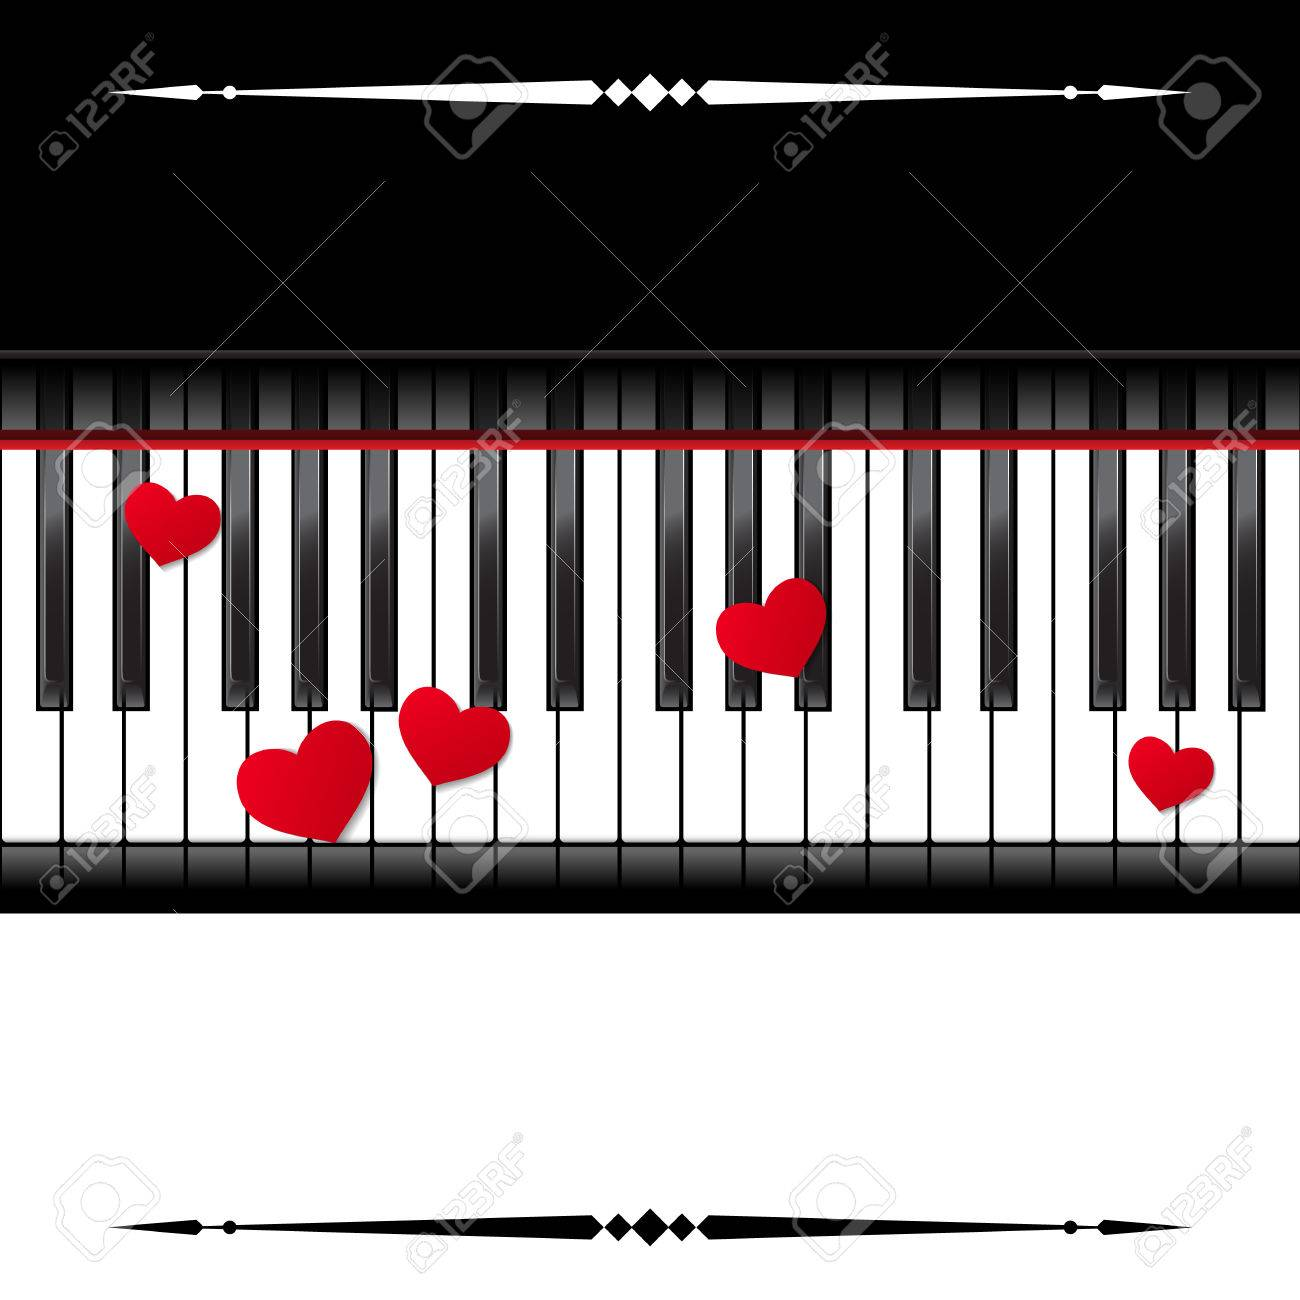 Template With Piano Keyboard On White And Black Background Vector Illustration Stock